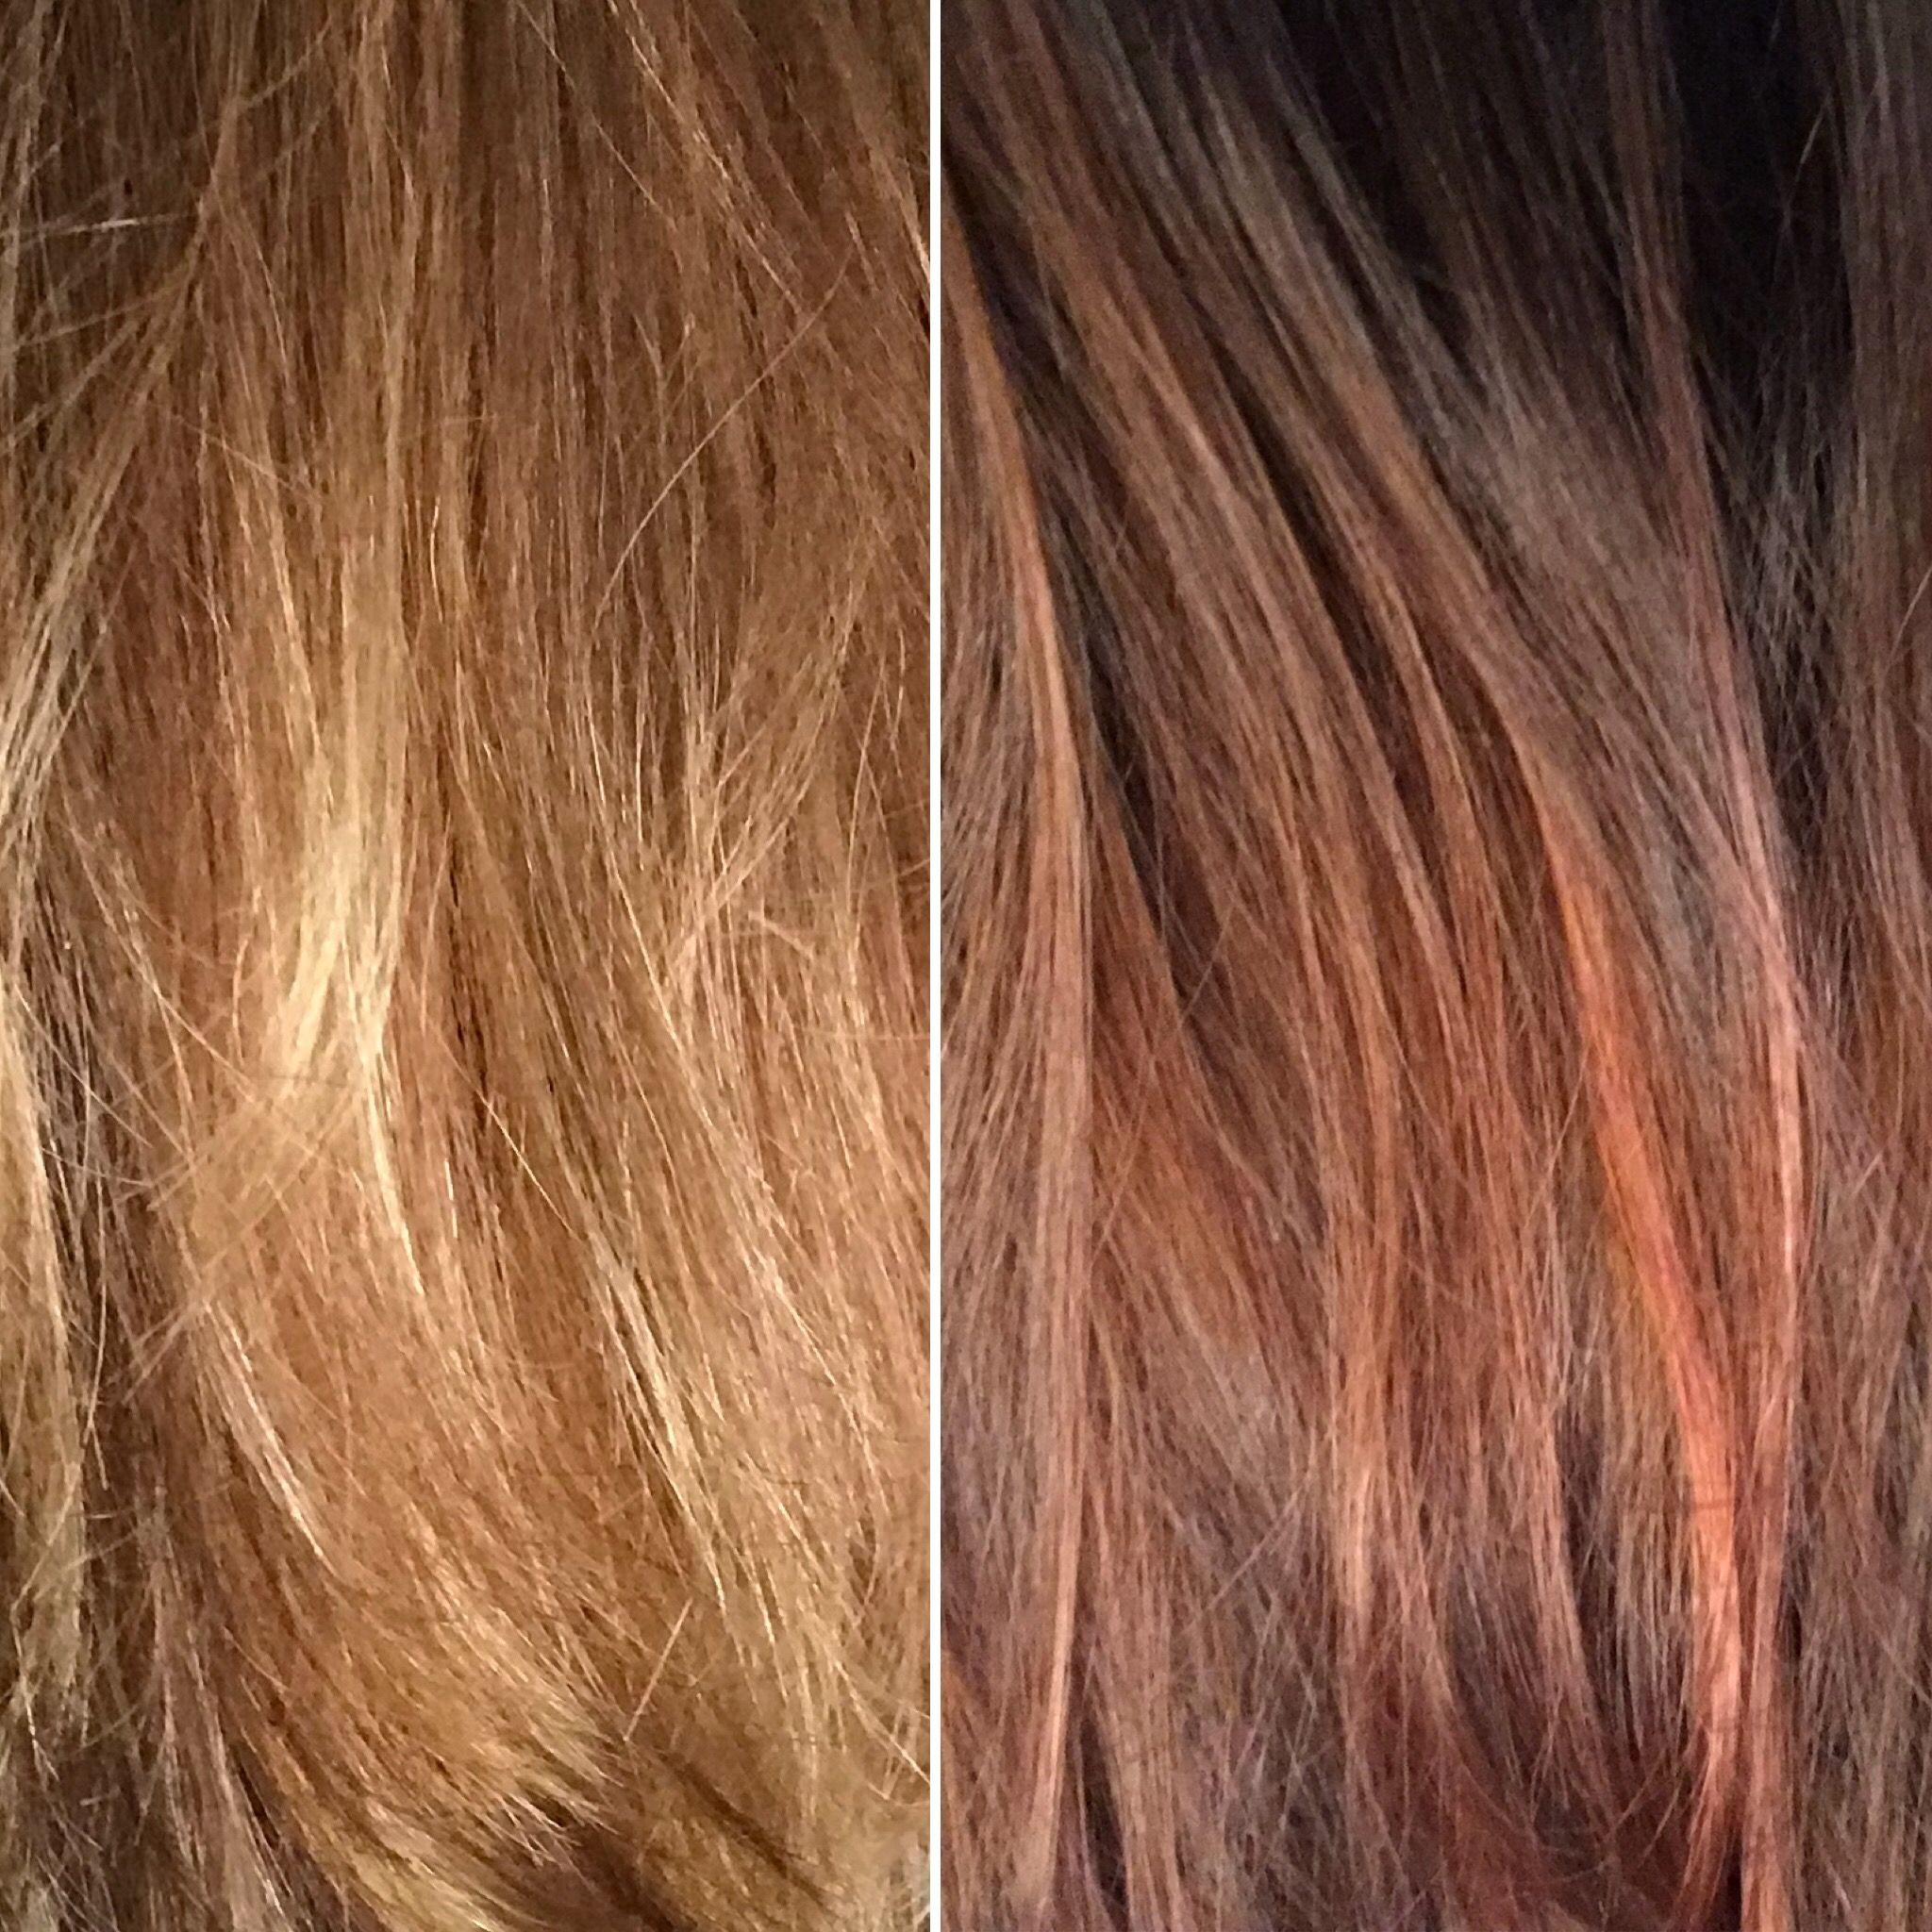 Before And After Using Overtone Rose Gold Hair Color Overtone Hair Hair